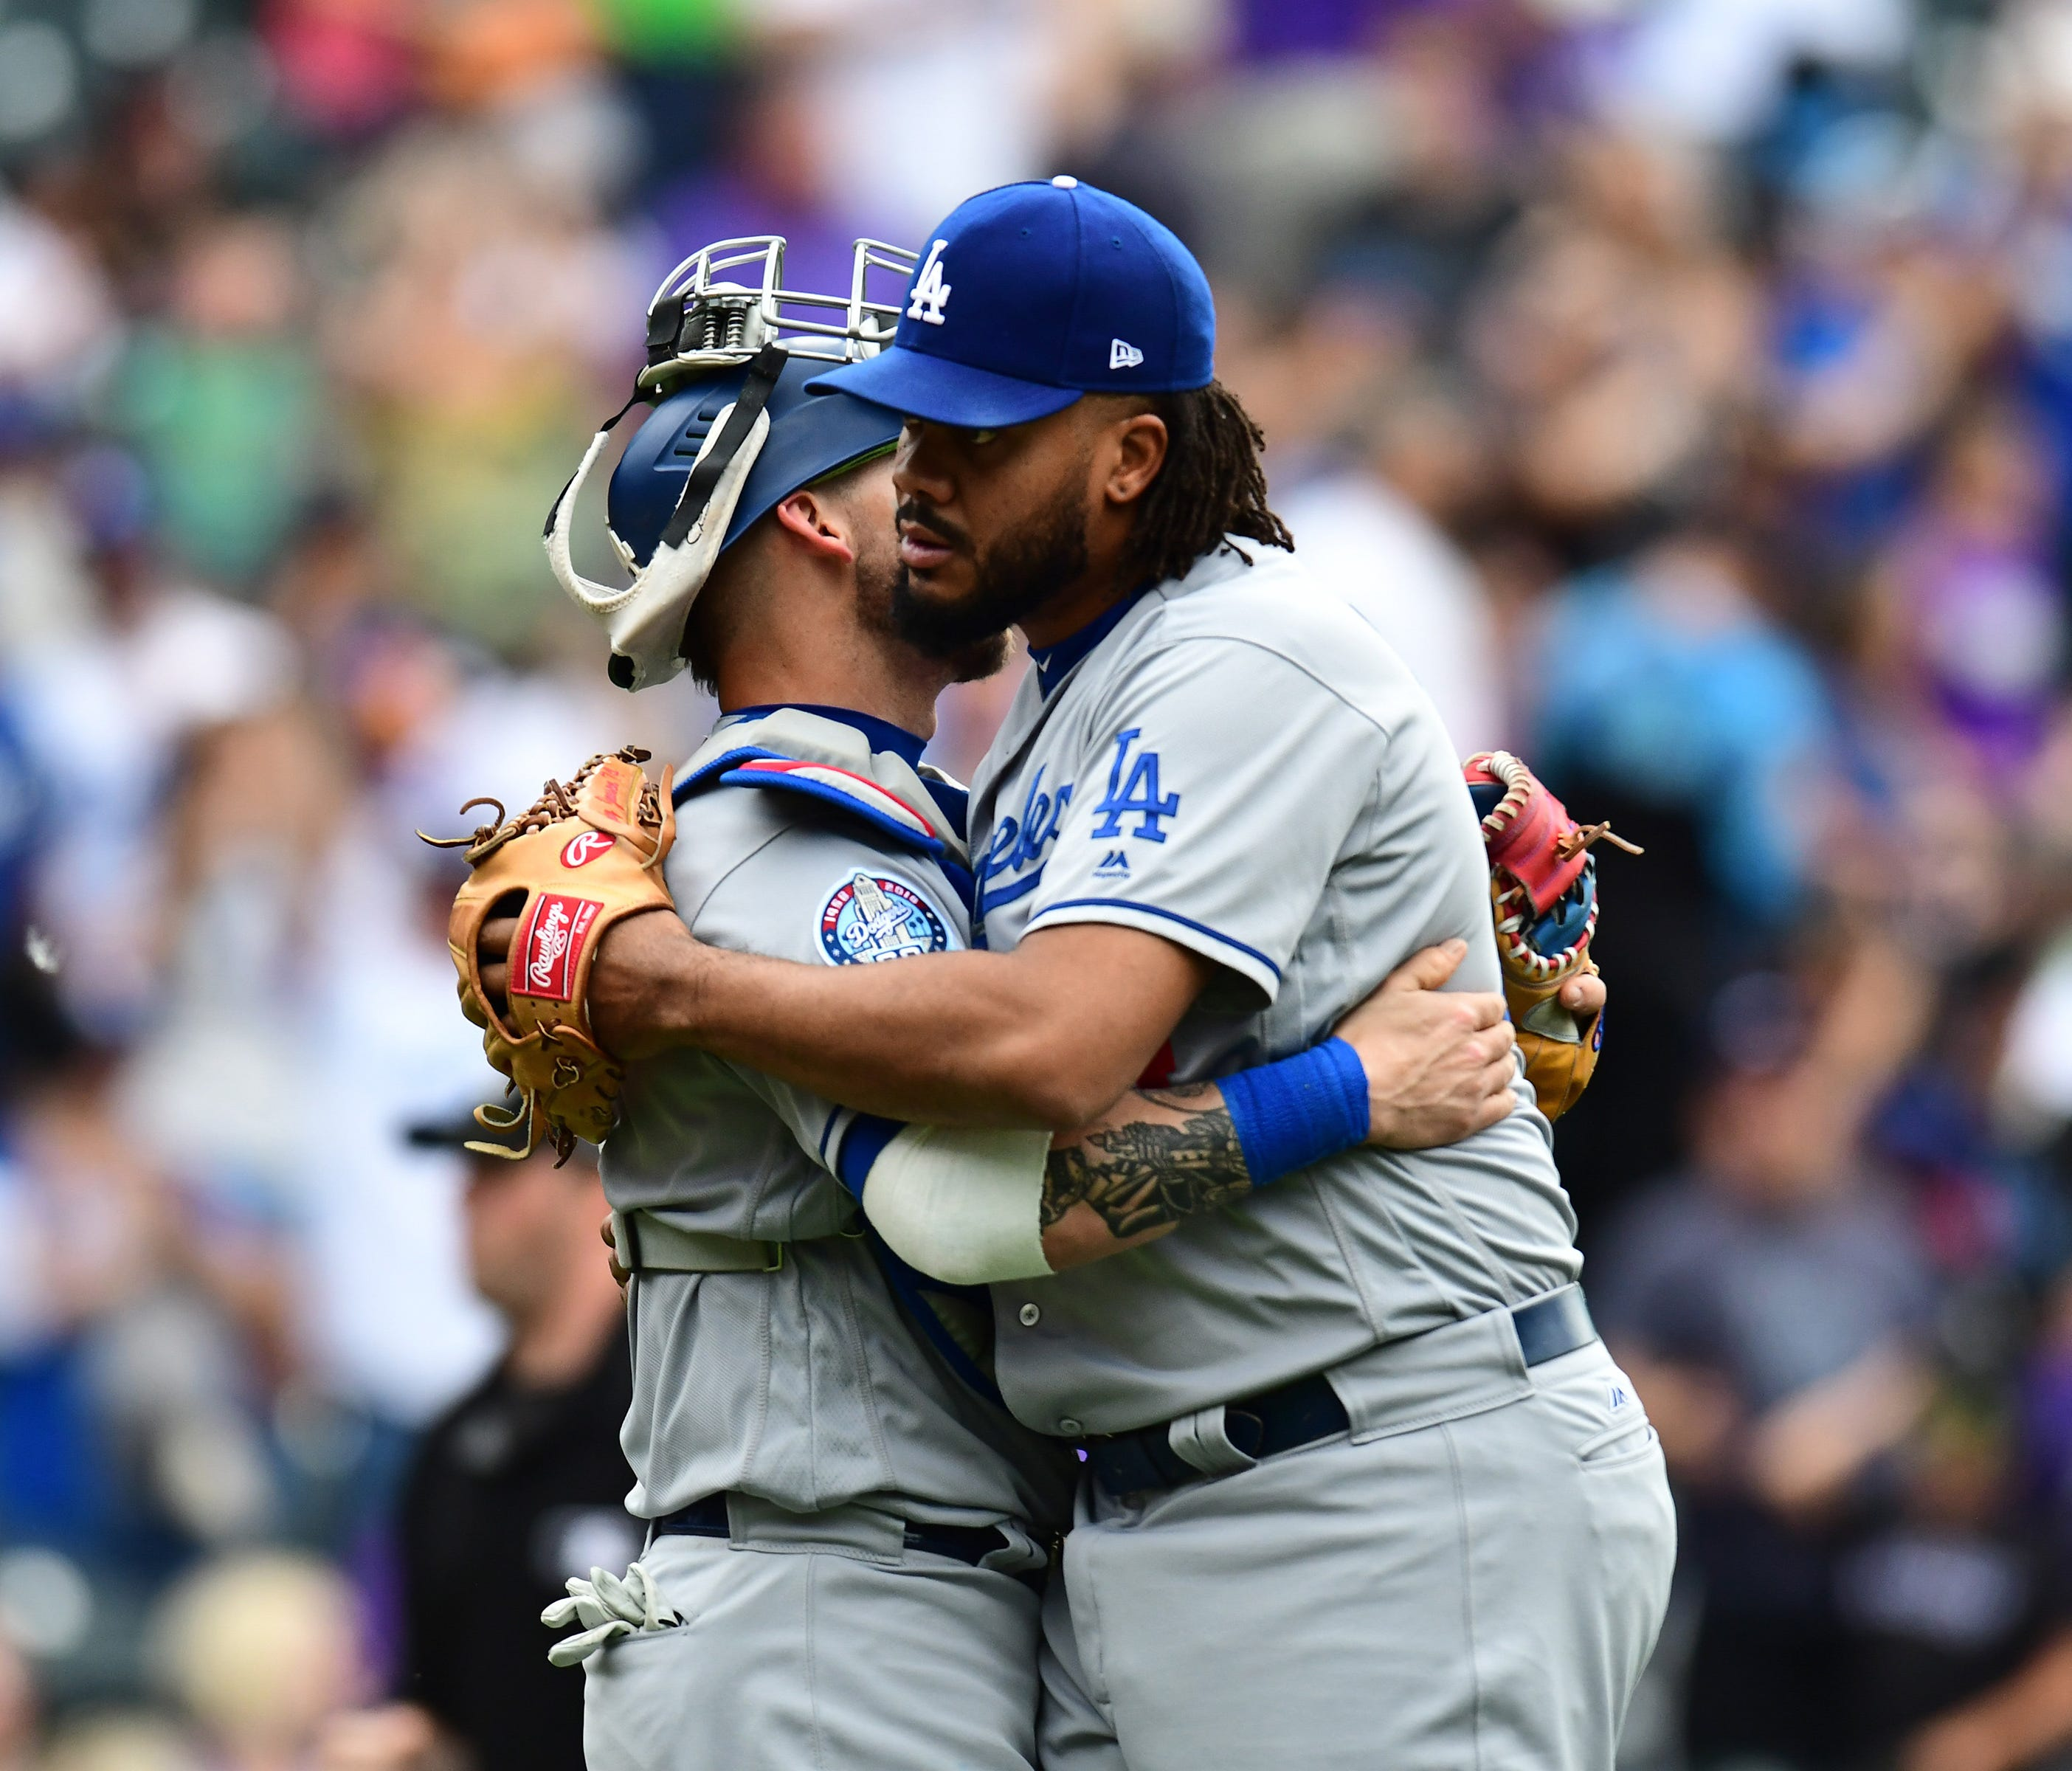 Kenley Jansen's early-season struggles hurt the Dodgers, but now he has 14 saves and a 1.04 WHIP.